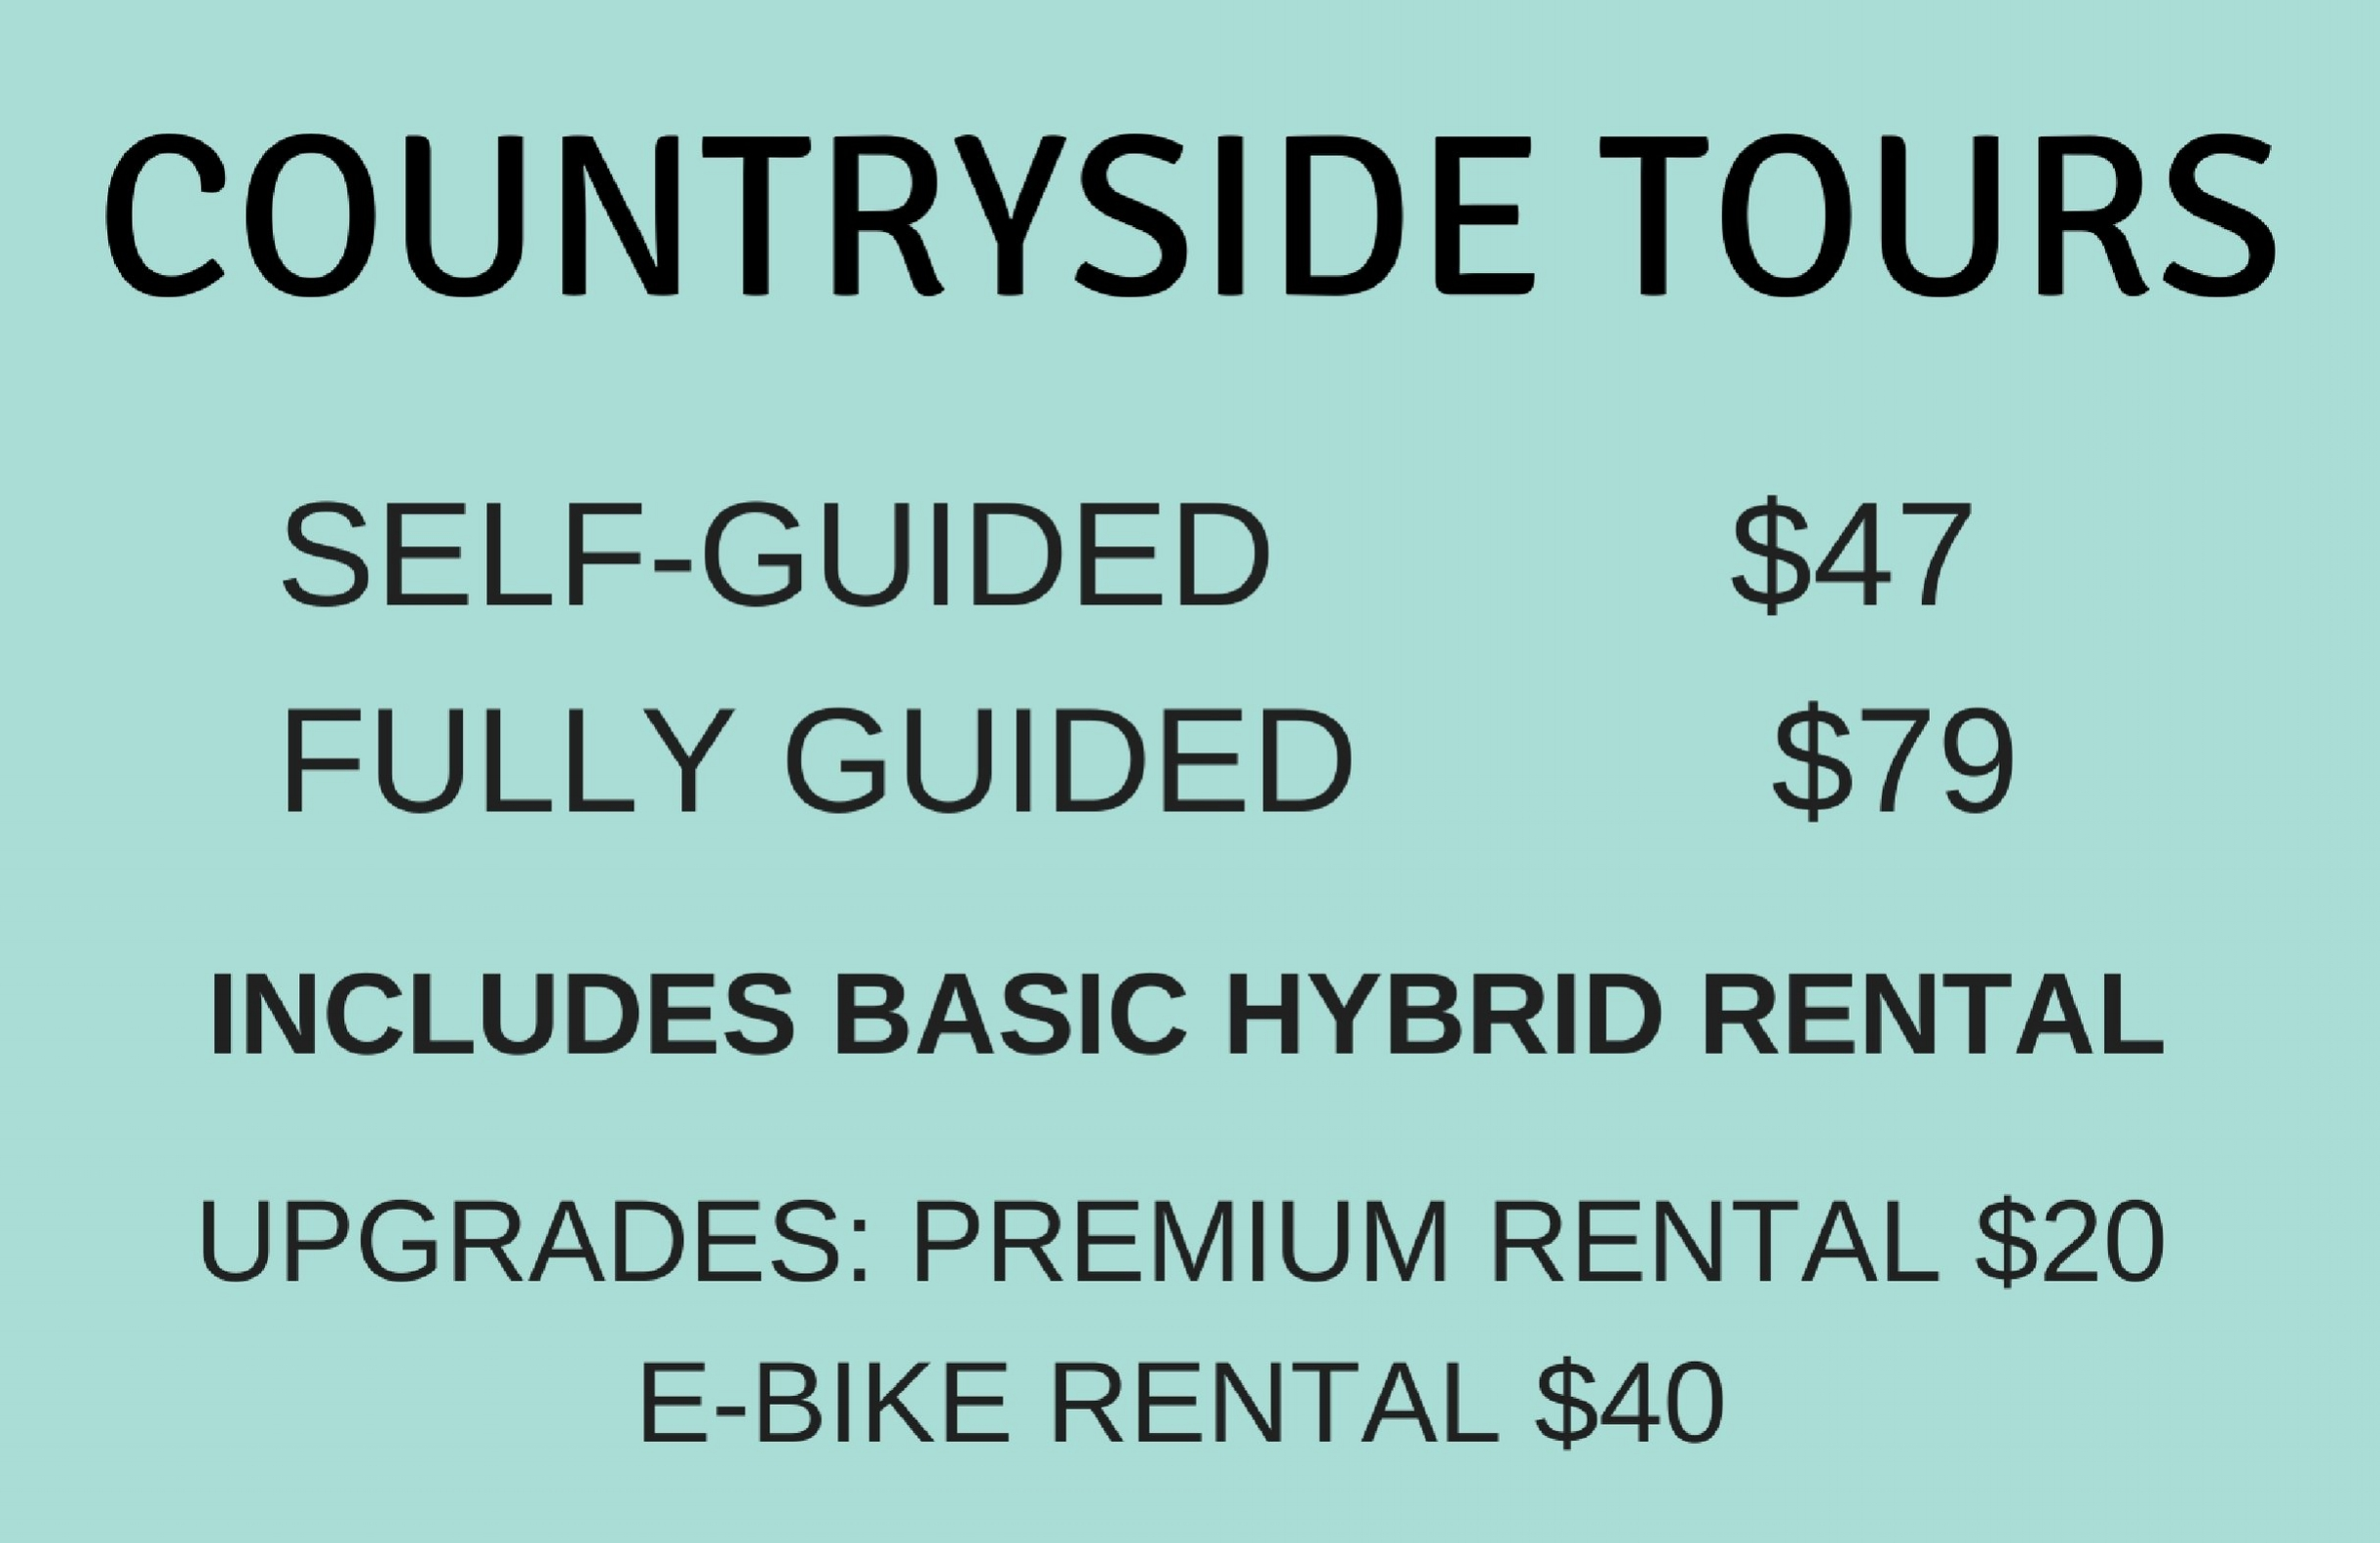 All Self-Guided Tours include: Basic Hybrid Bicycle rental for 4 hours, a helmet, on-call roadside assistance, a patch kit and printed maps with route options and points of interests.